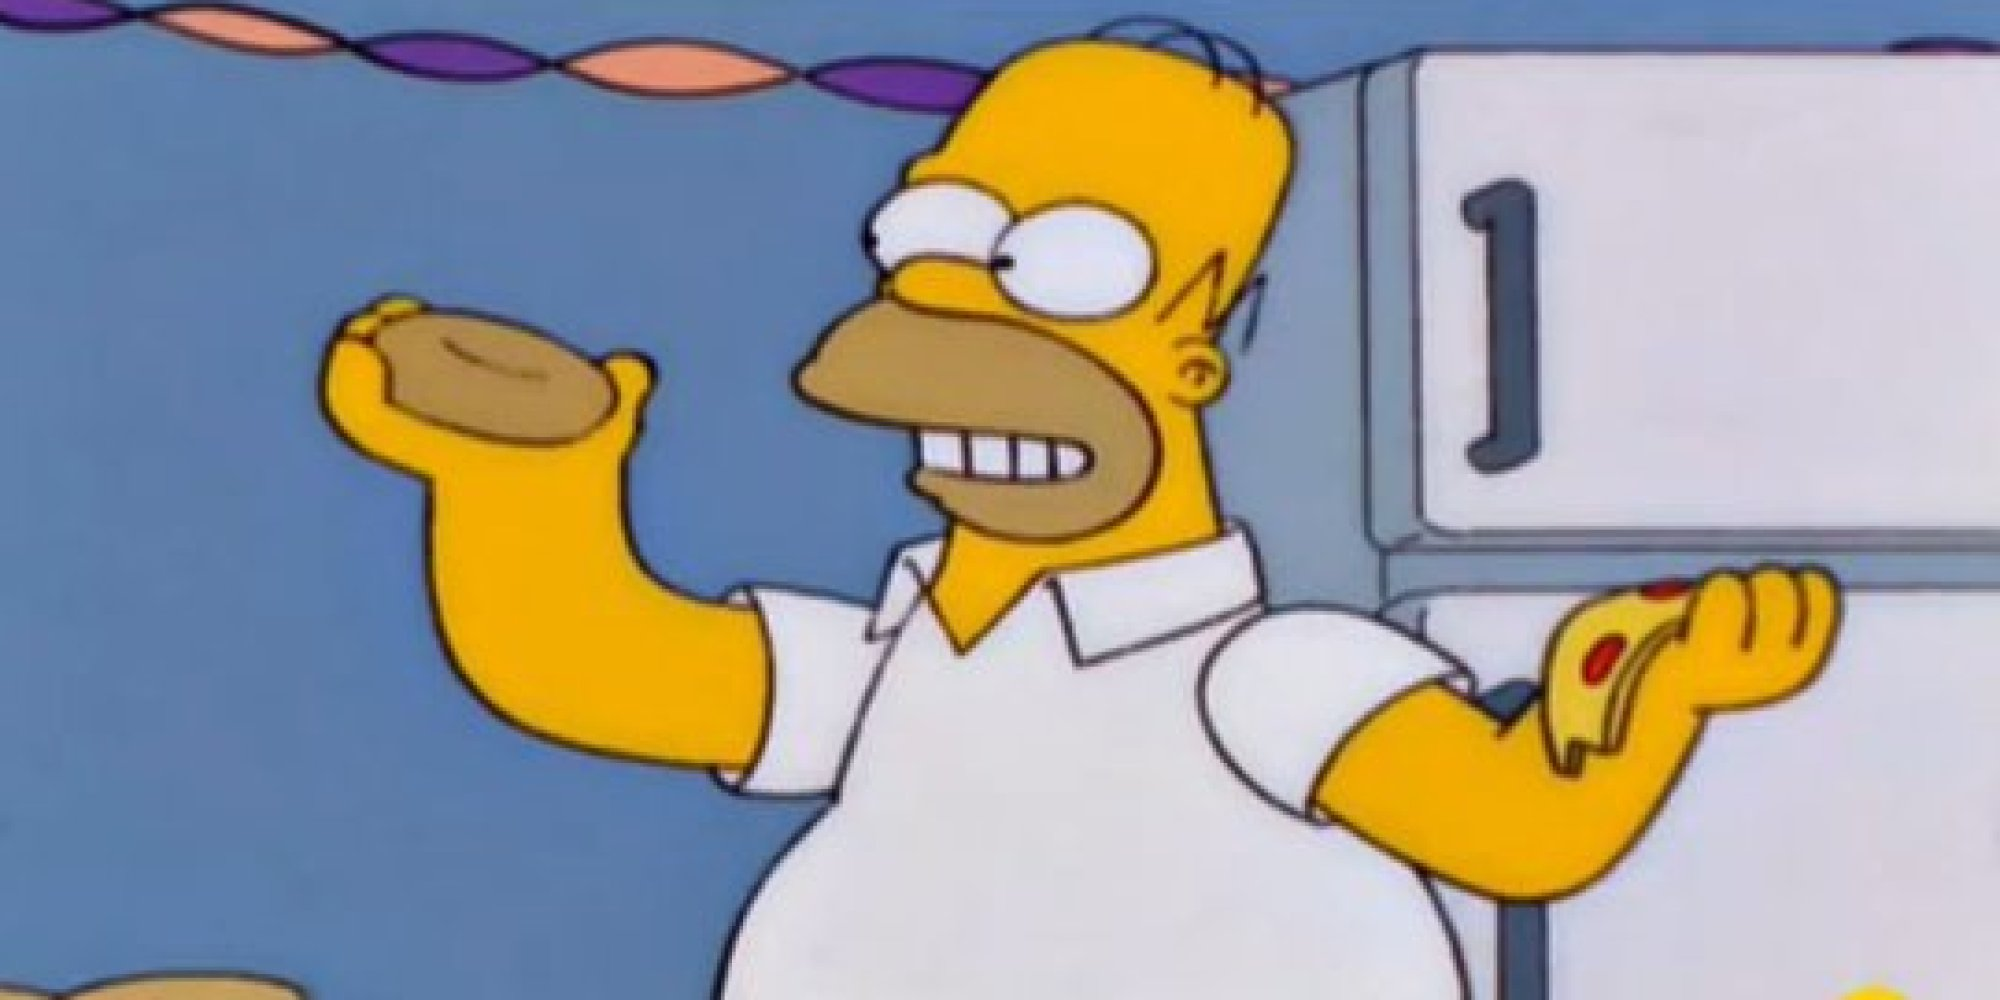 25 of homer simpson 39 s greatest food moments of all time - Homer simpson and bart simpson ...